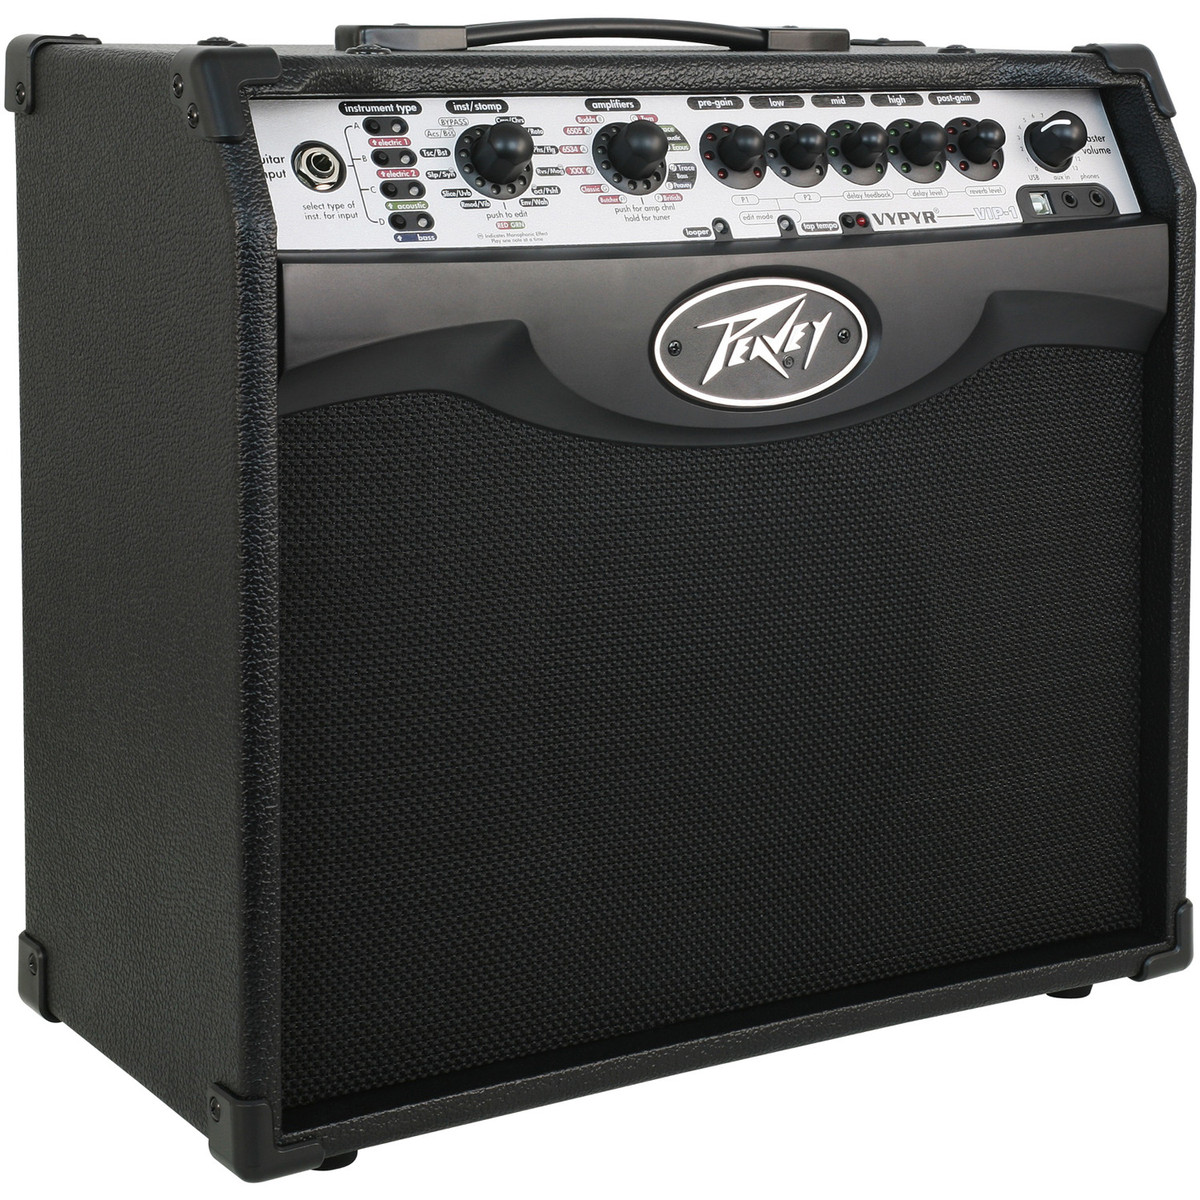 peavey vypyr vip 1 modelling combo amp at gear4music. Black Bedroom Furniture Sets. Home Design Ideas